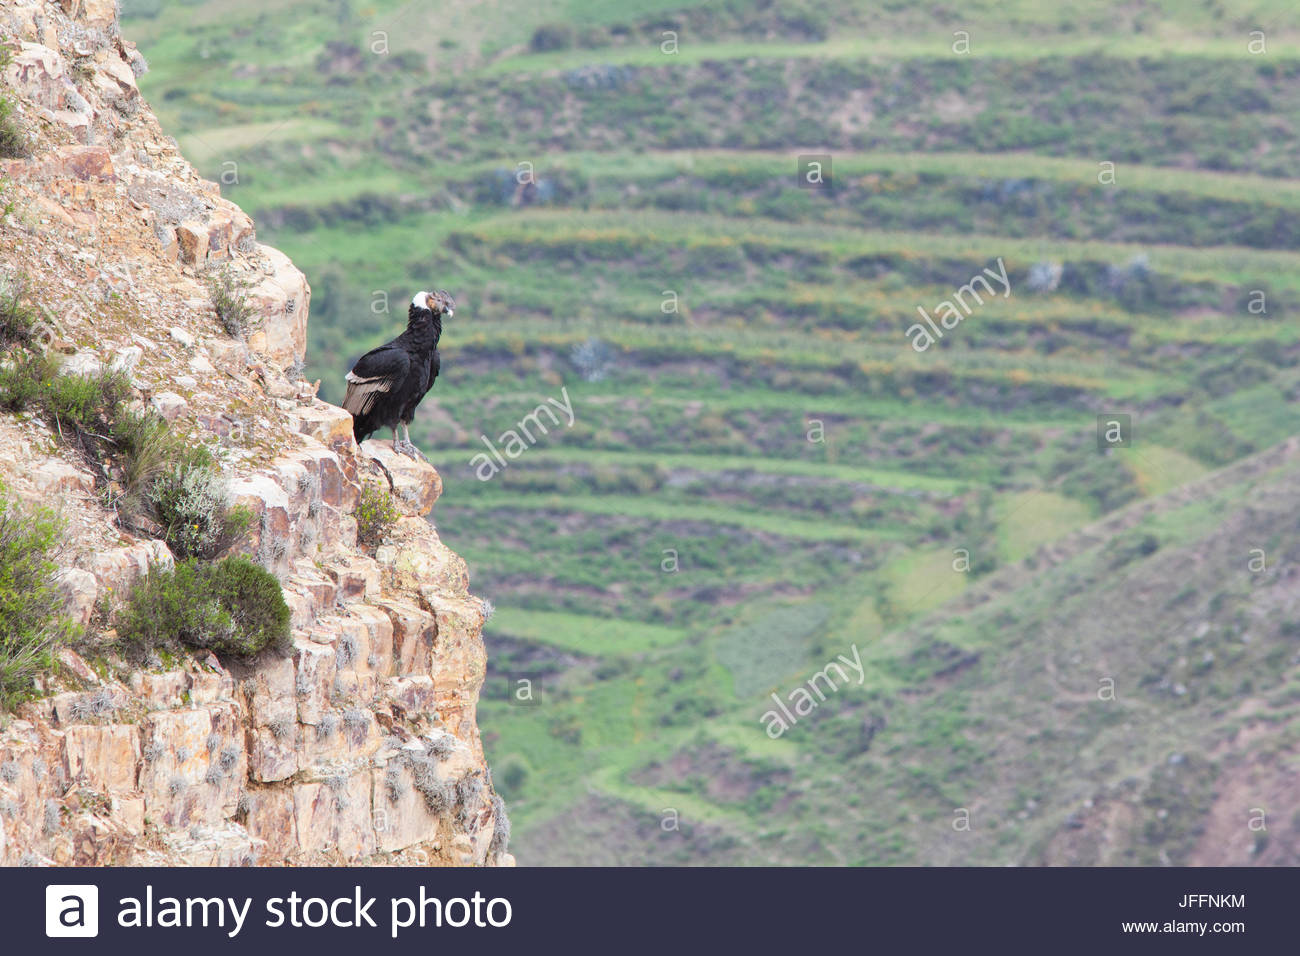 An Andean condor, Vultur gryphus, a near threatened species, perched on a rock face overlooking farmland. - Stock Image